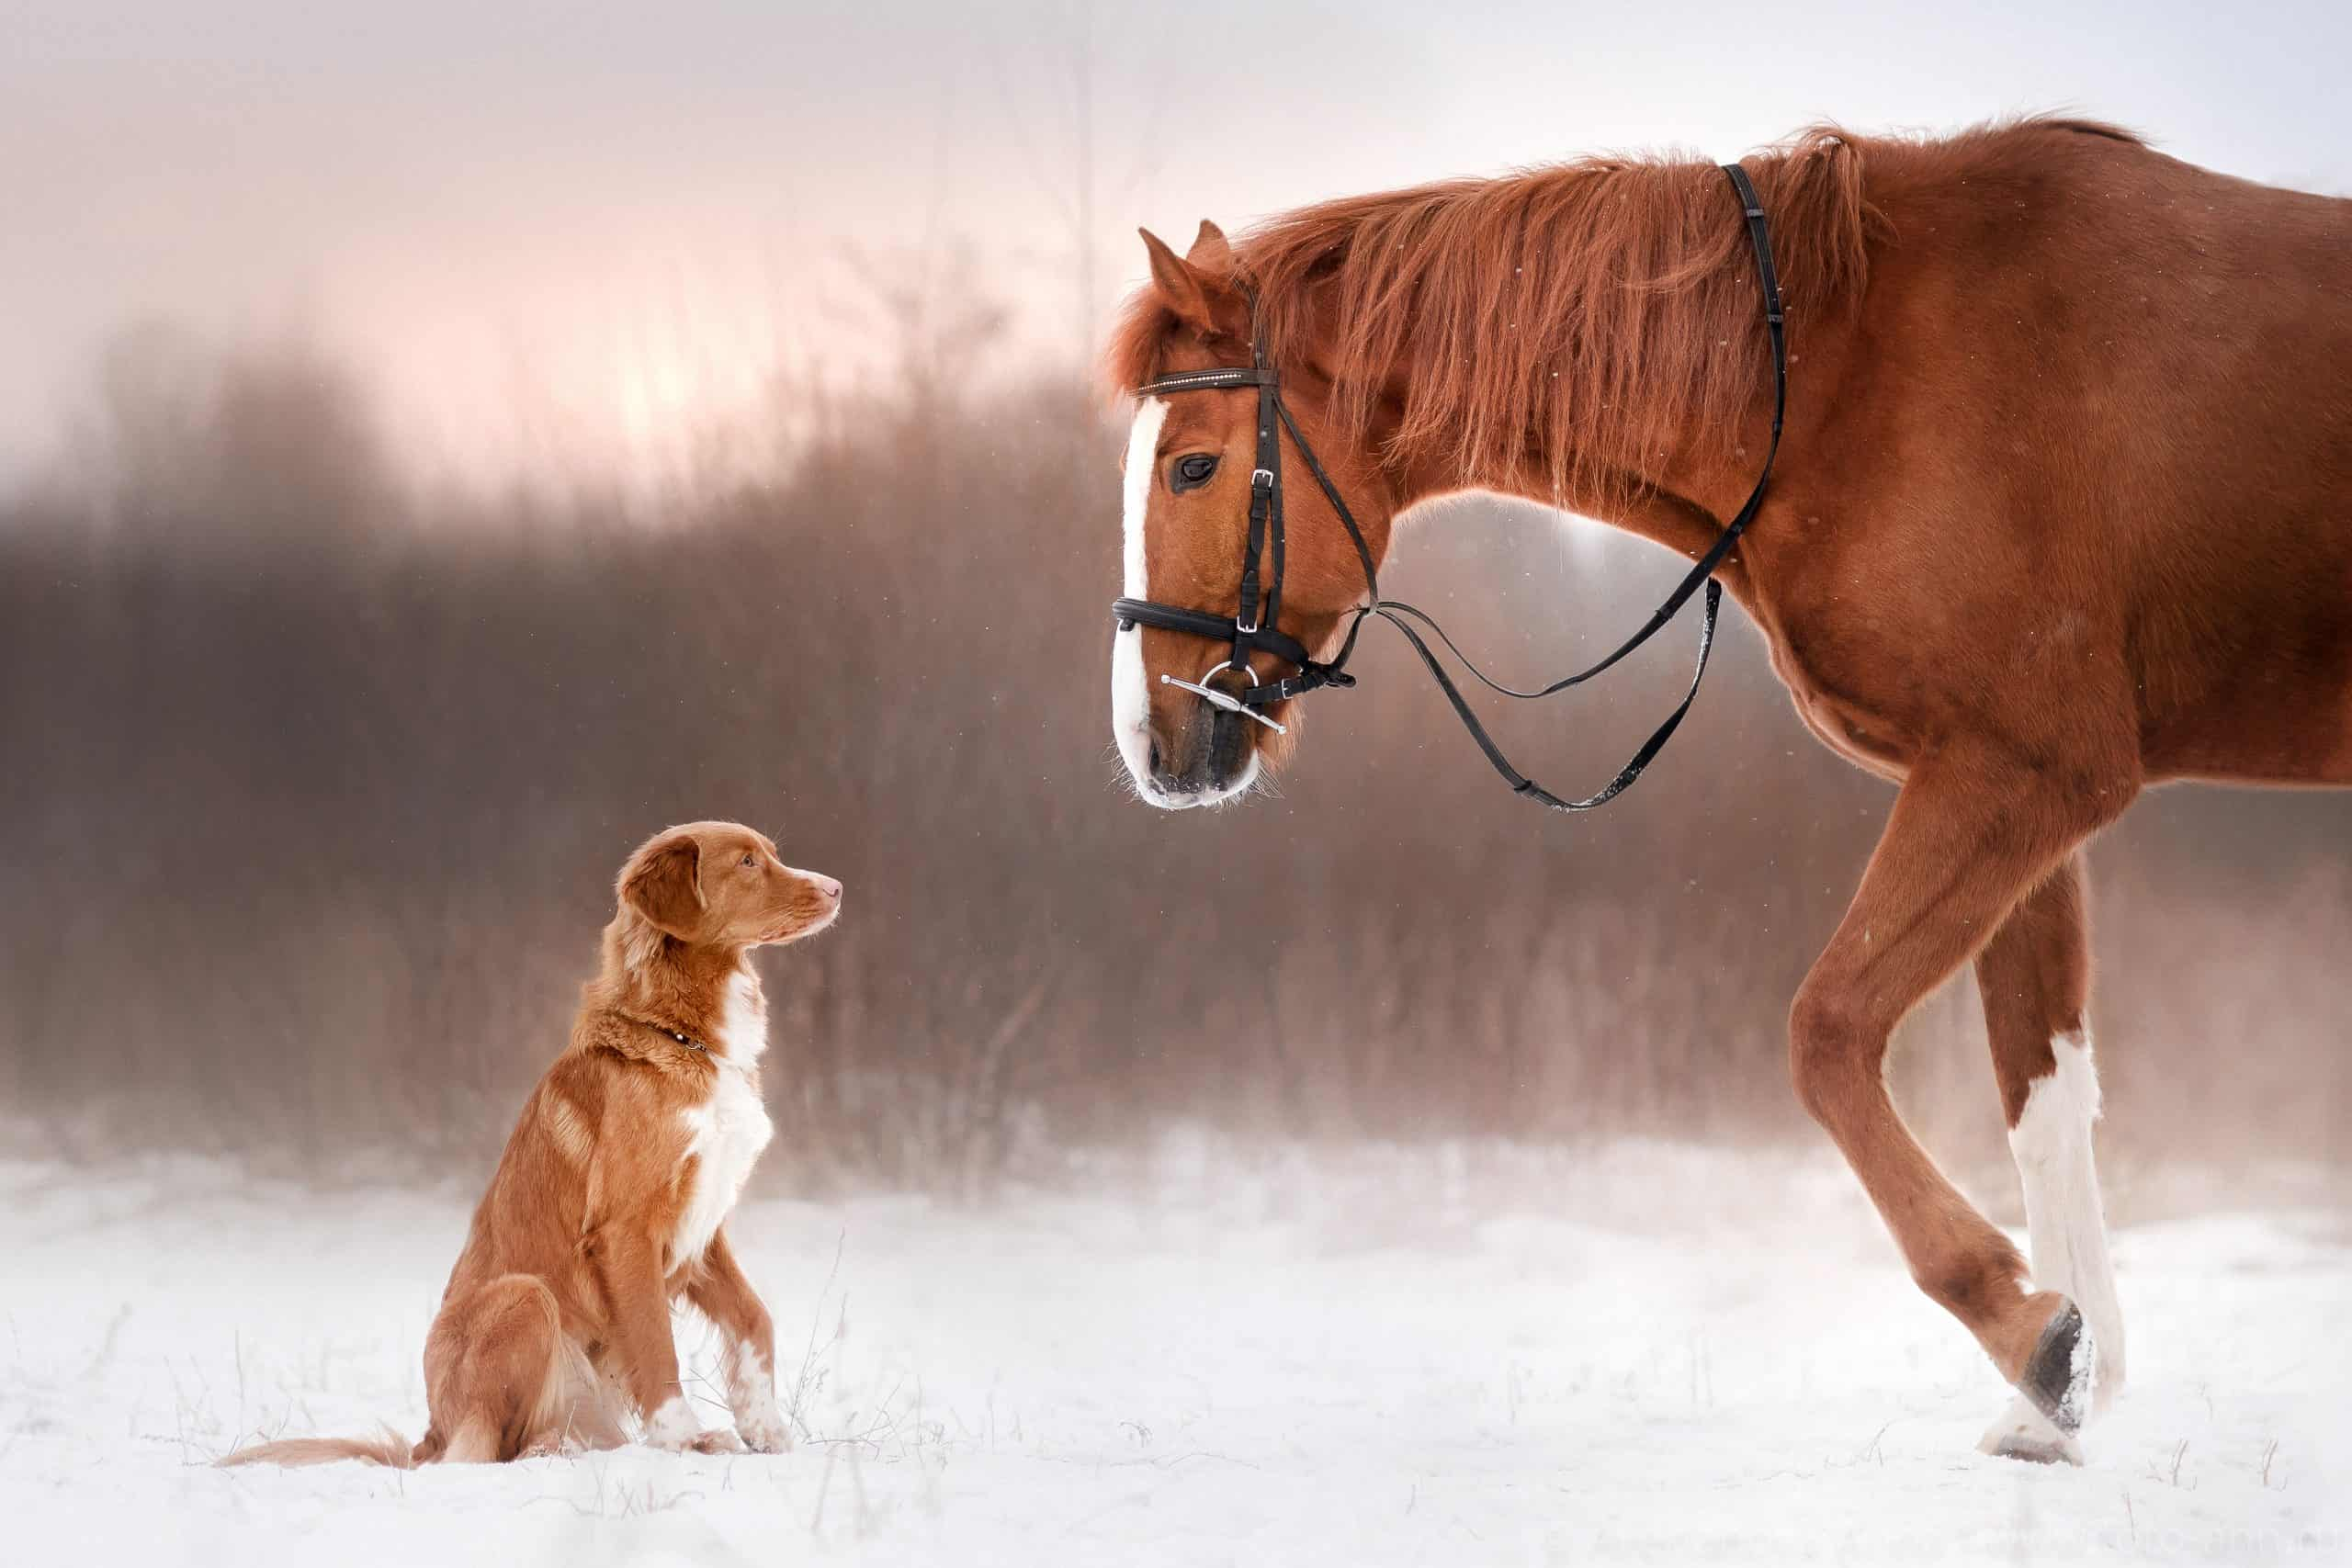 Nova Scotia Duck Tolling Retriever Dog and horse in the winter on the nature horse health